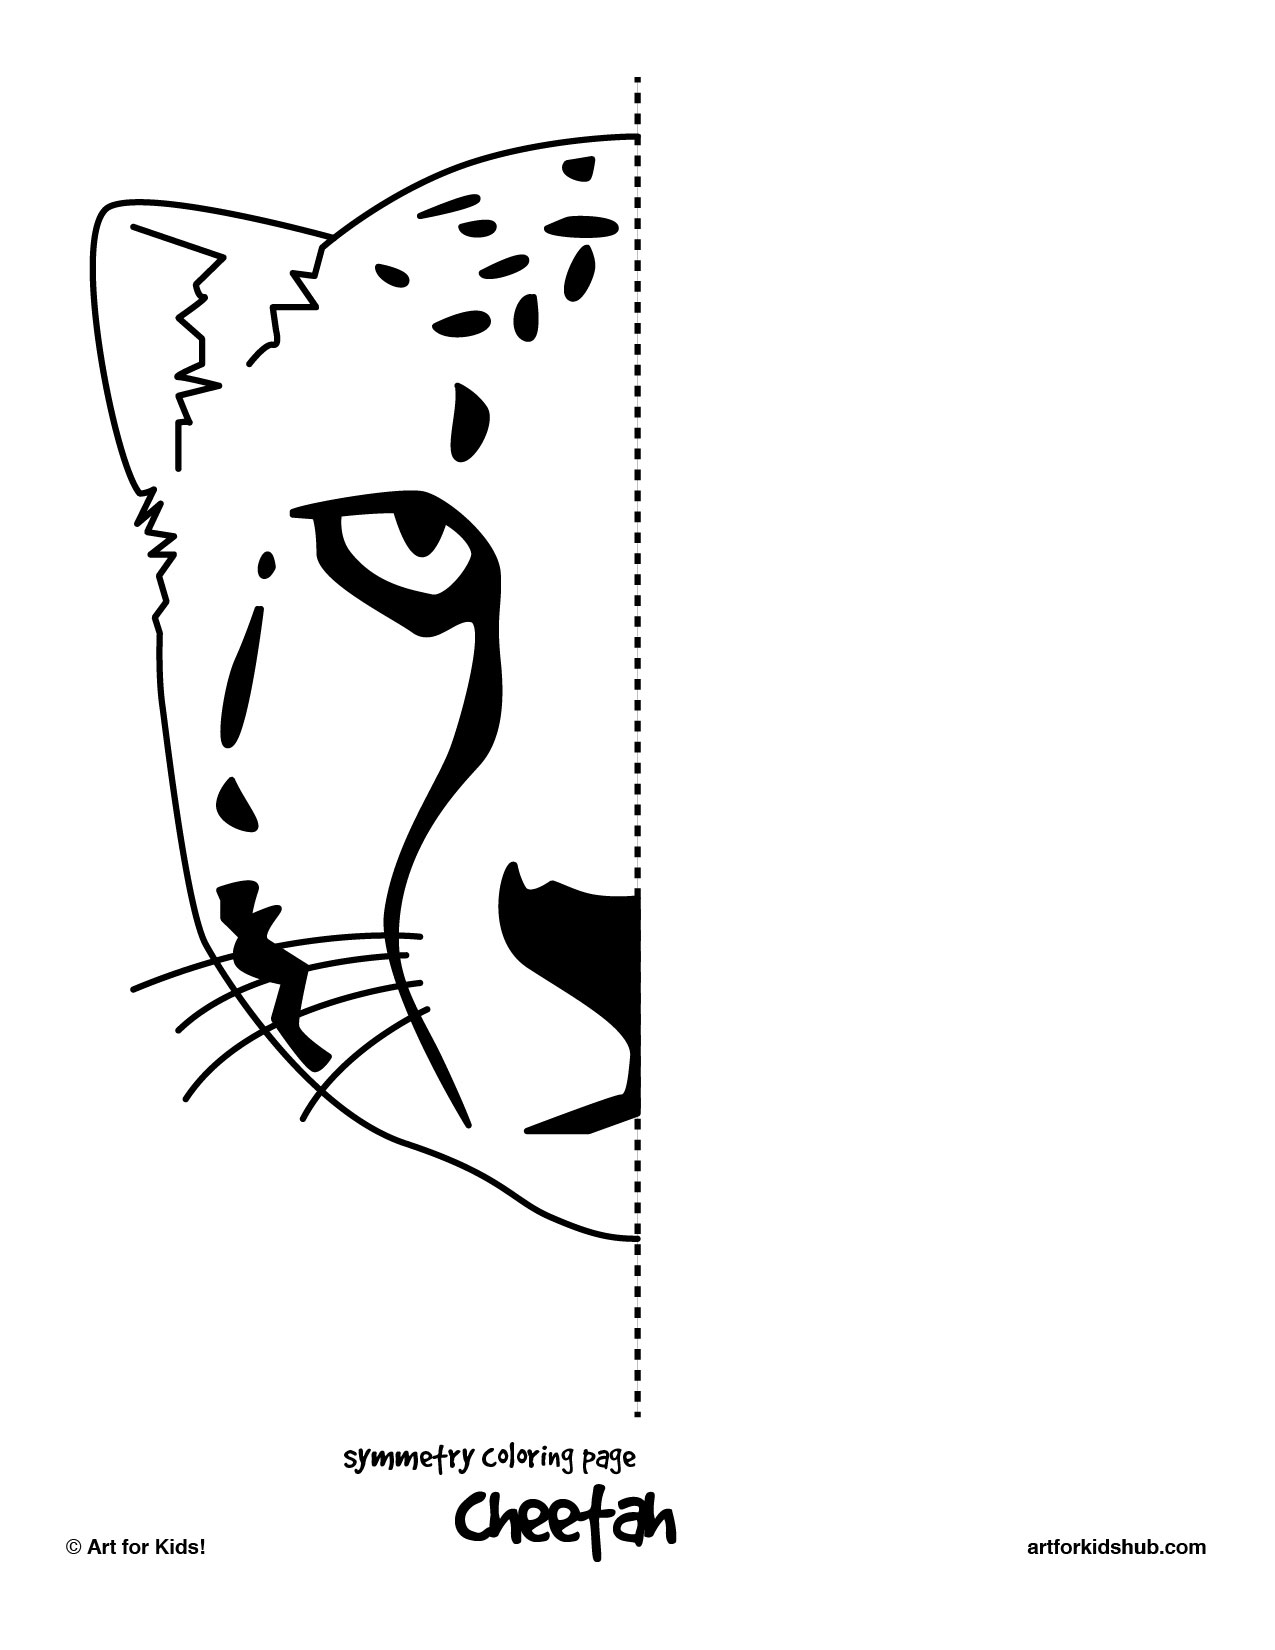 Free Printable Symmetry Drawings Sketch Coloring Page